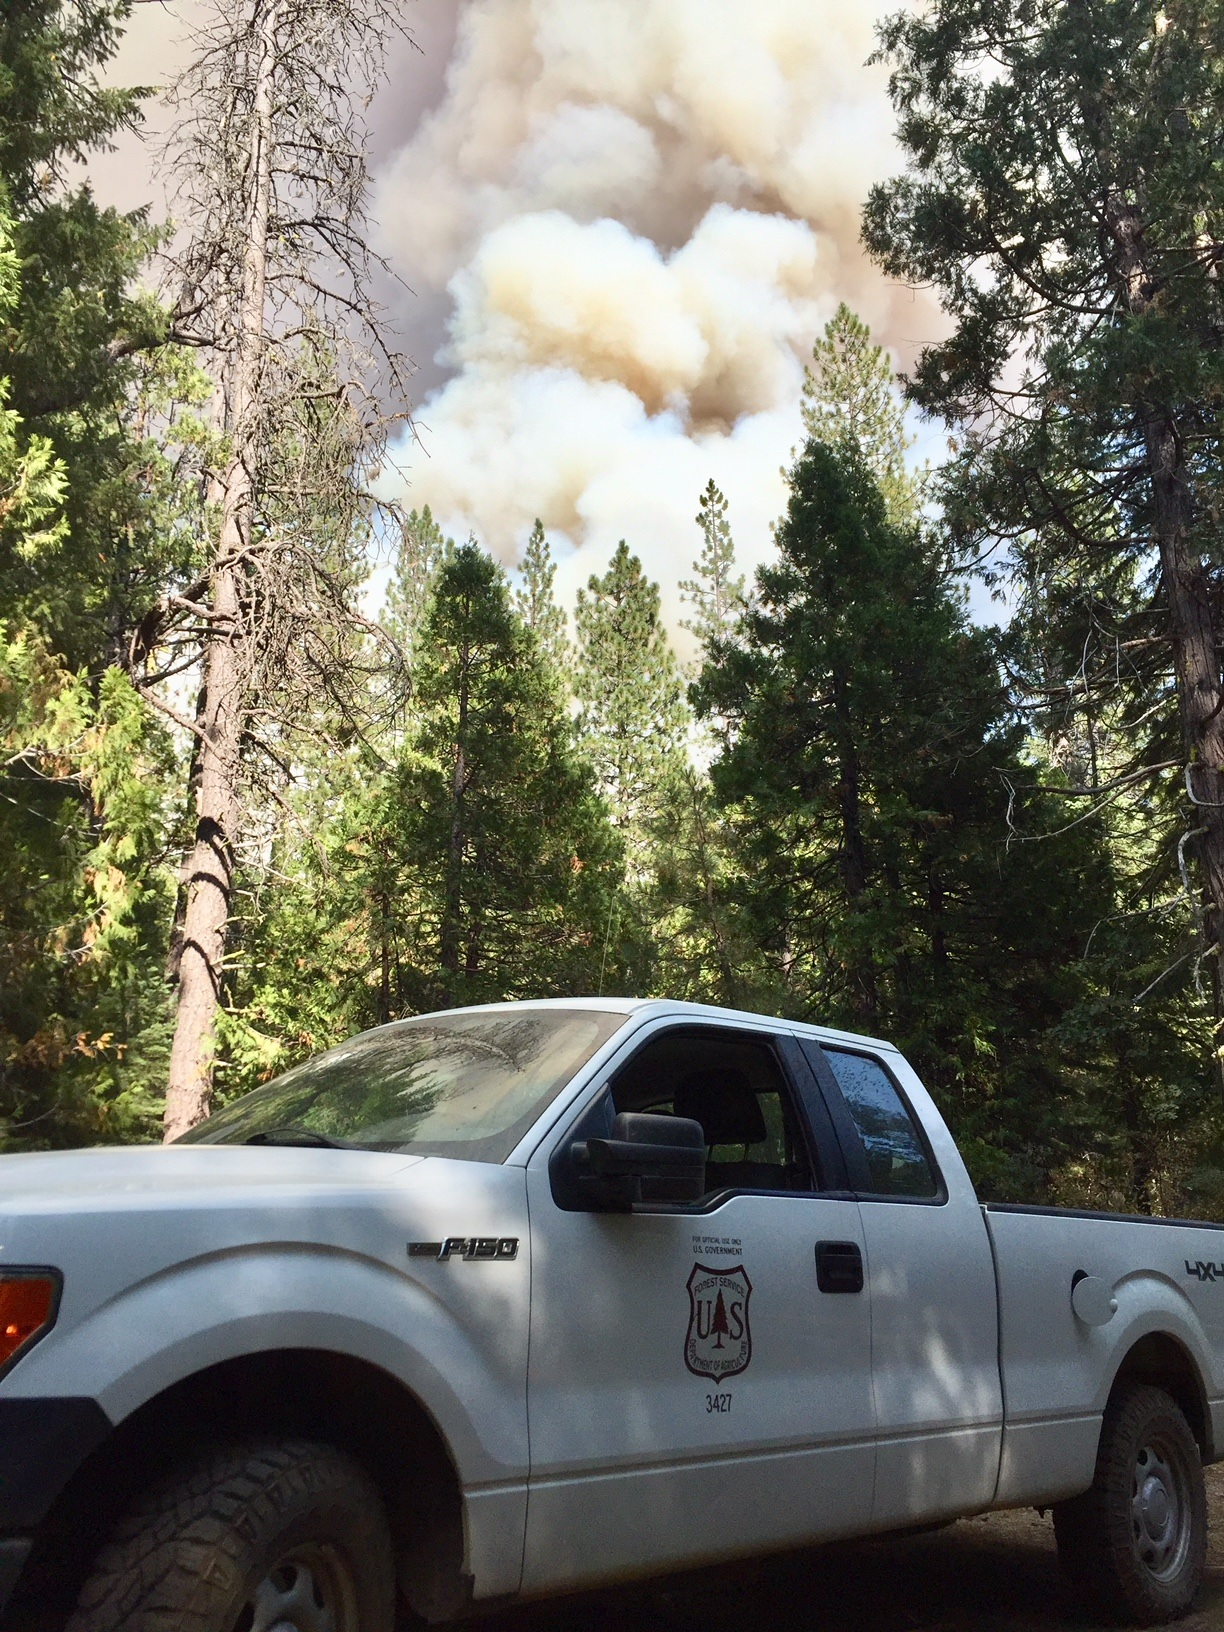 North Fire - Jai - USFS Truck